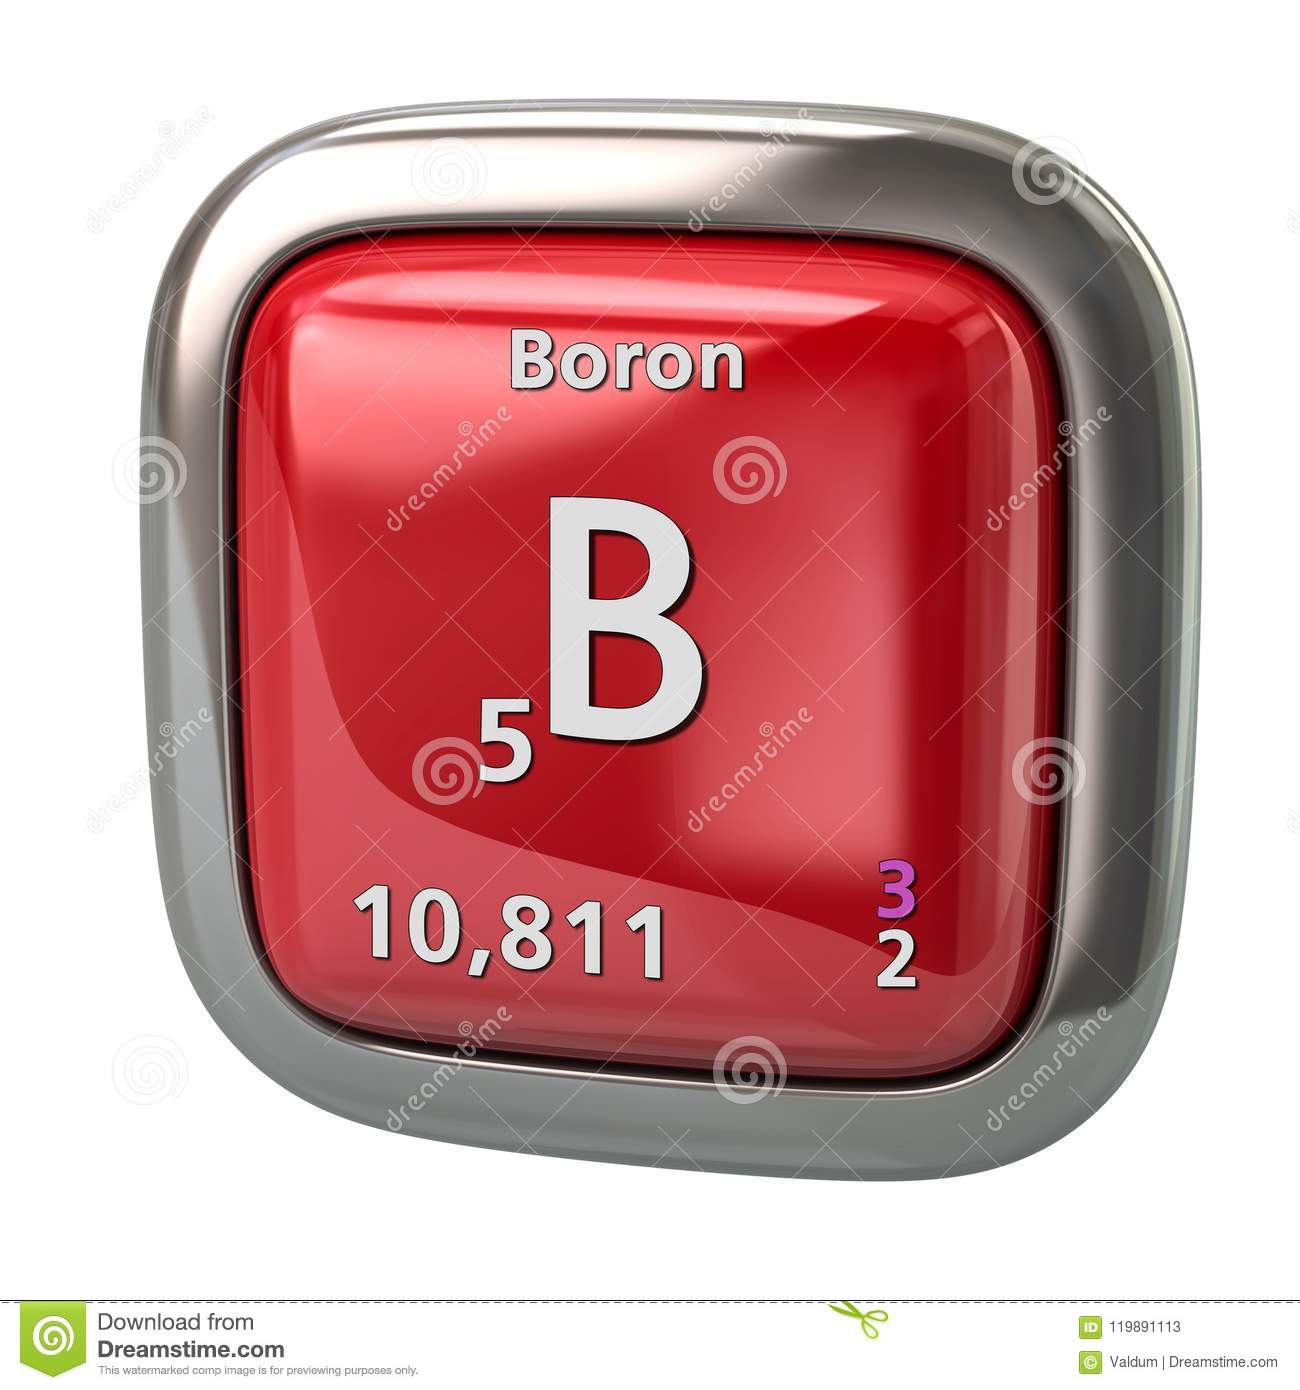 Boron B Chemical Element From The Periodic Table Red Icon ...